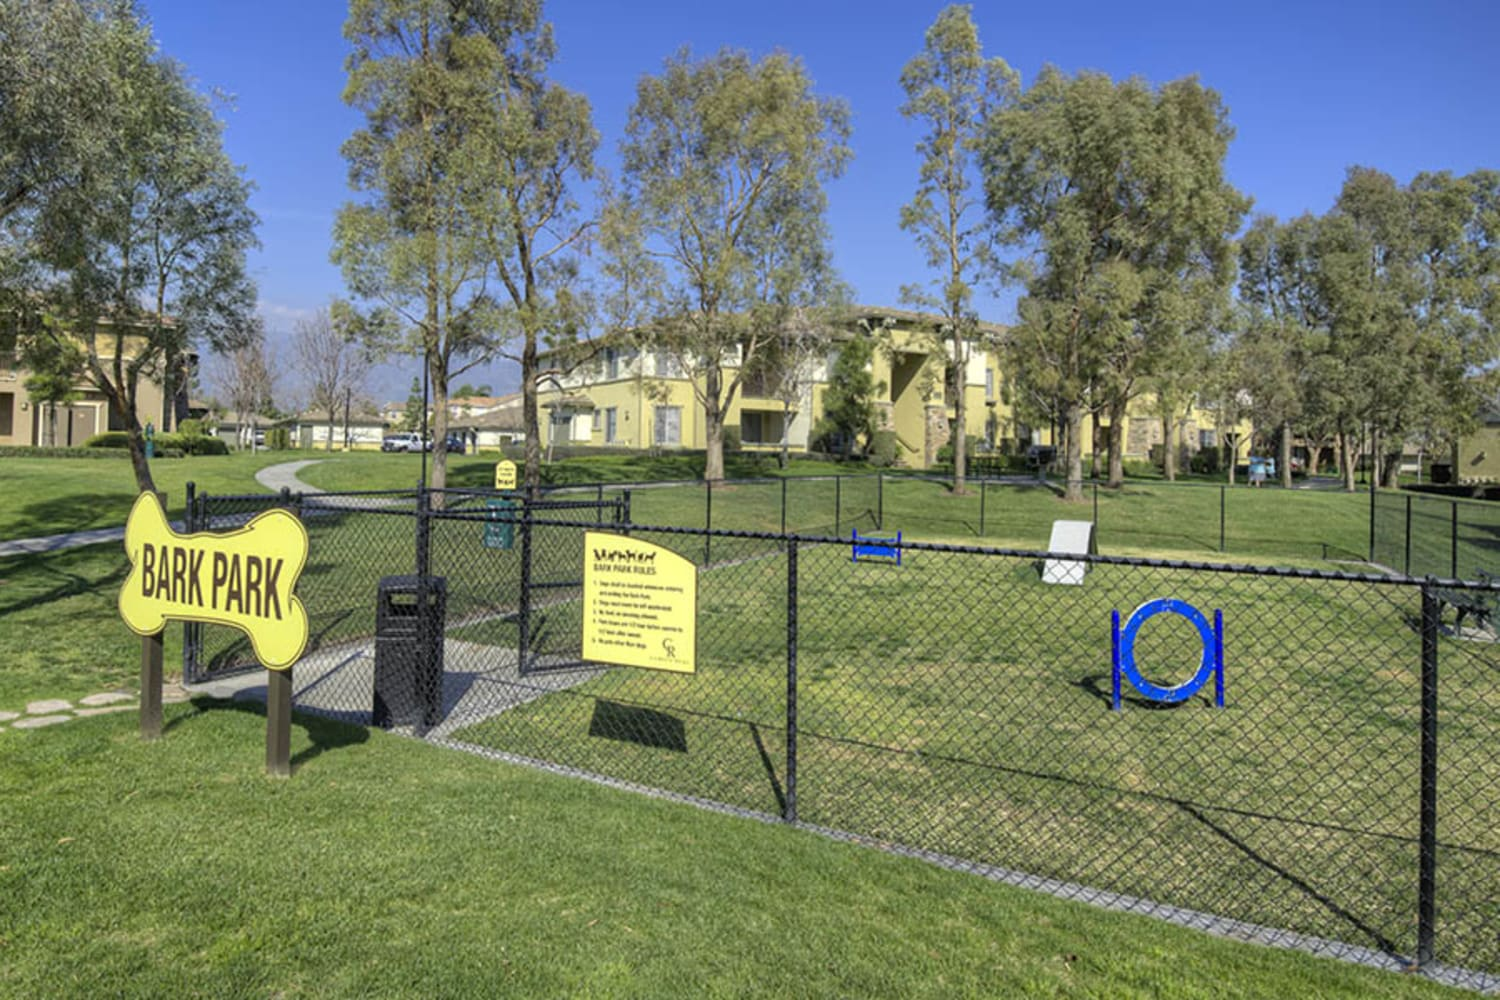 Camino Real offers an onsite dog park in Rancho Cucamonga, California